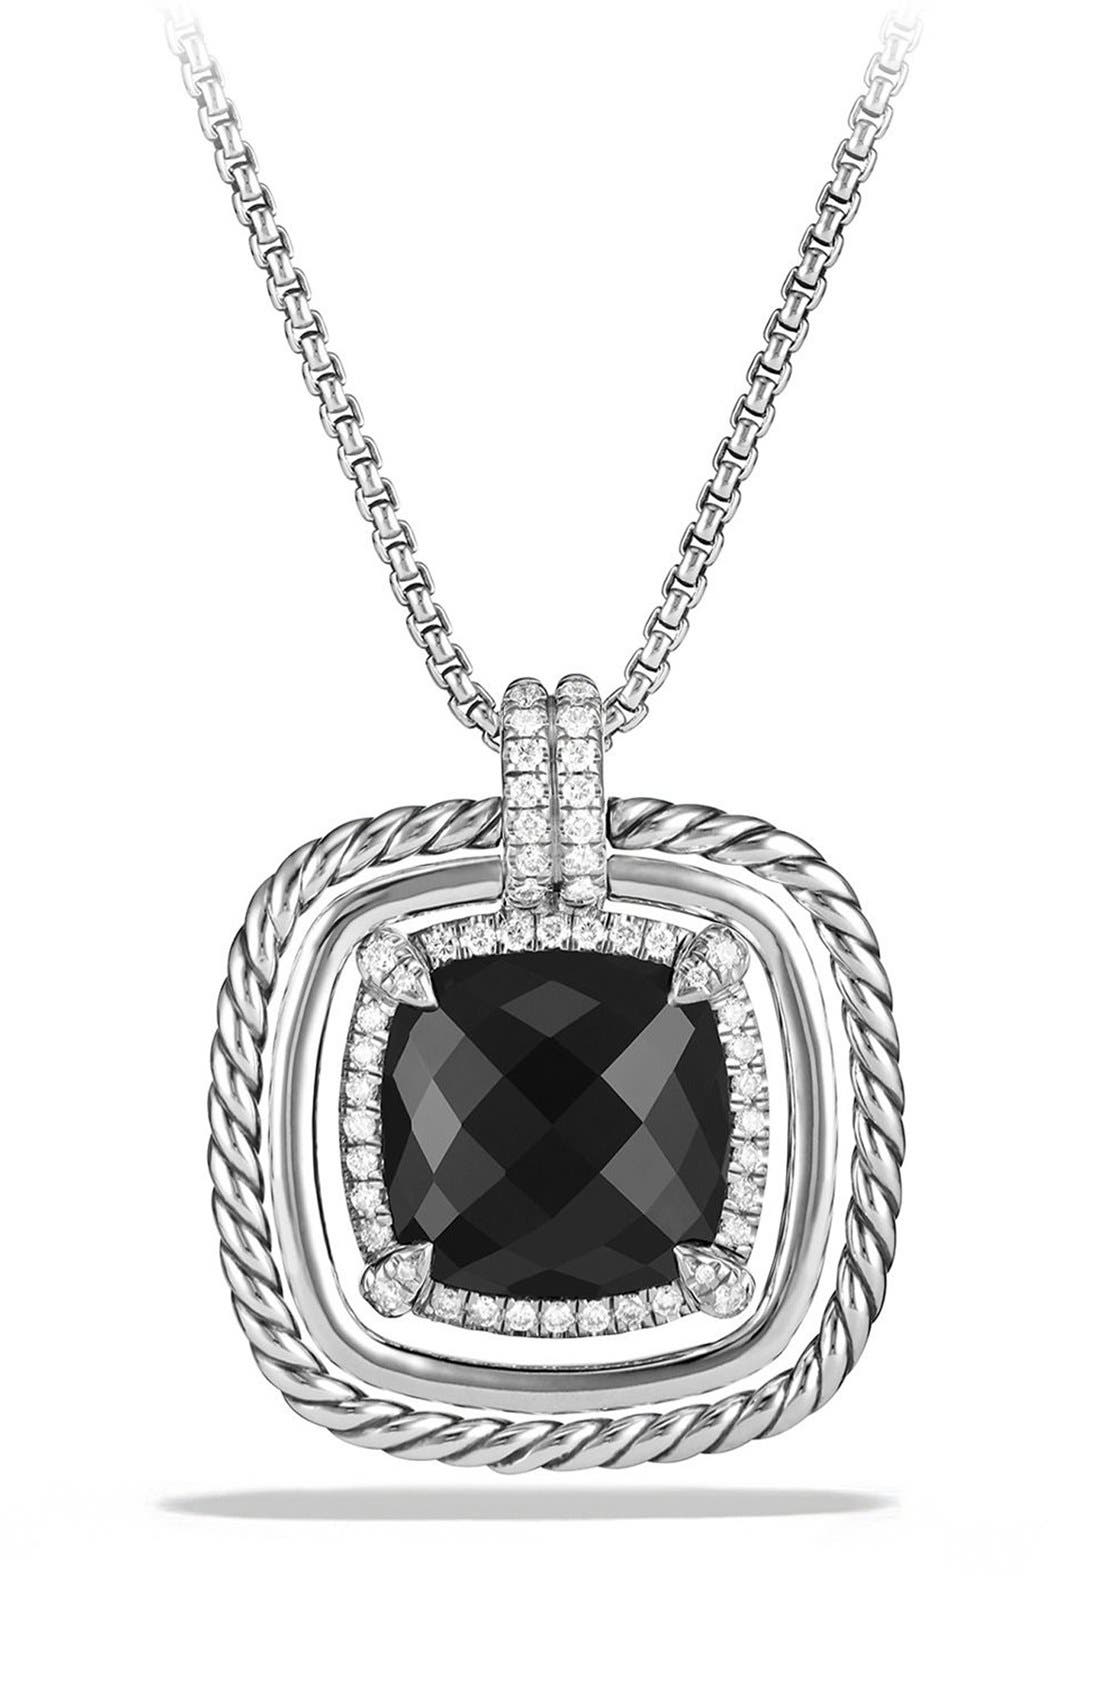 DAVID YURMAN Châtelaine Large Pavé Bezel Pendant Necklace with Diamonds